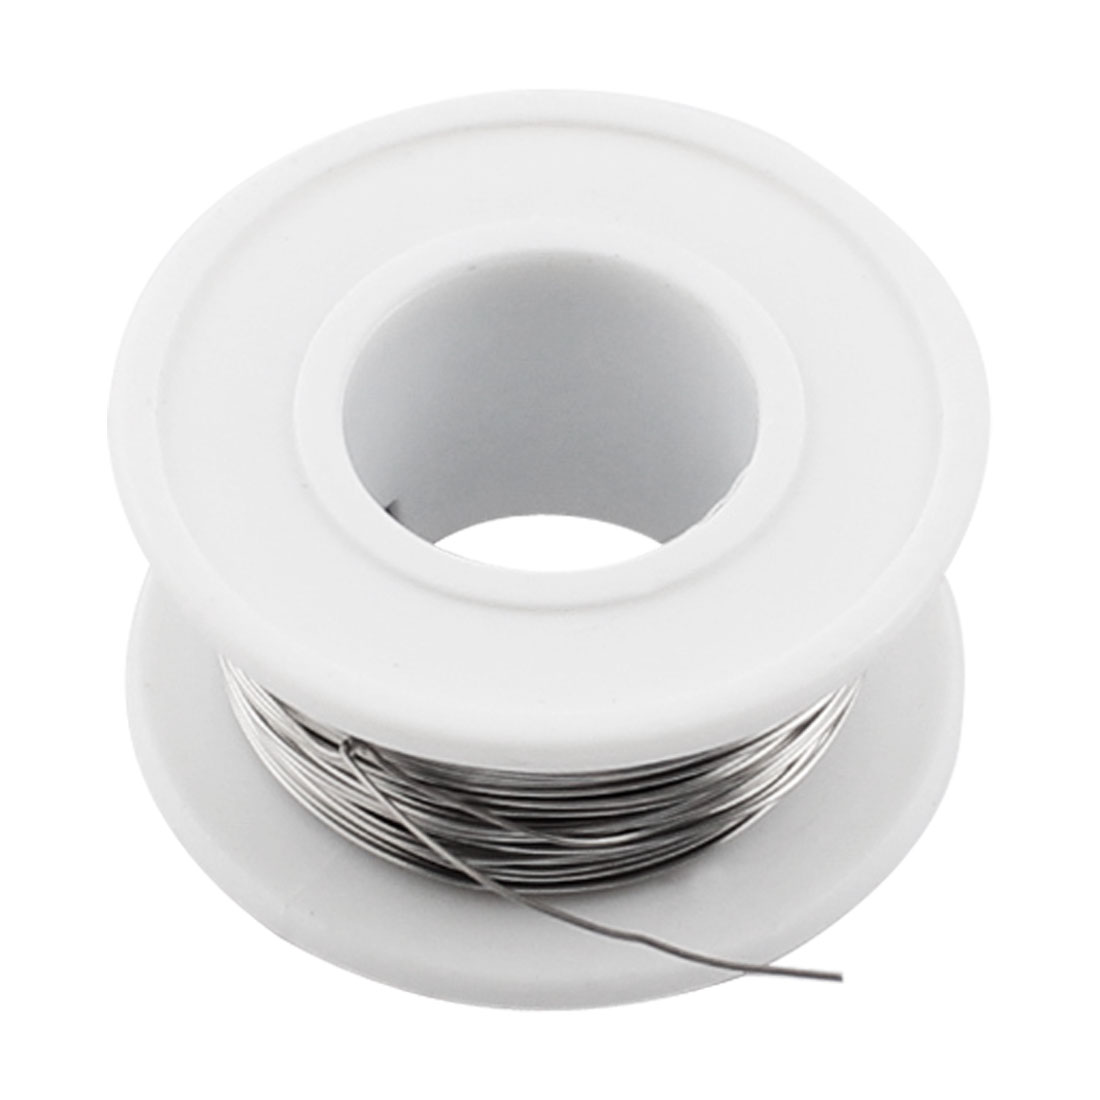 0.35mm Dia Cable AWG27 Guage Nichrome Resistance Resistor Wire Cable 50meter 165ft Long for Heating Elements